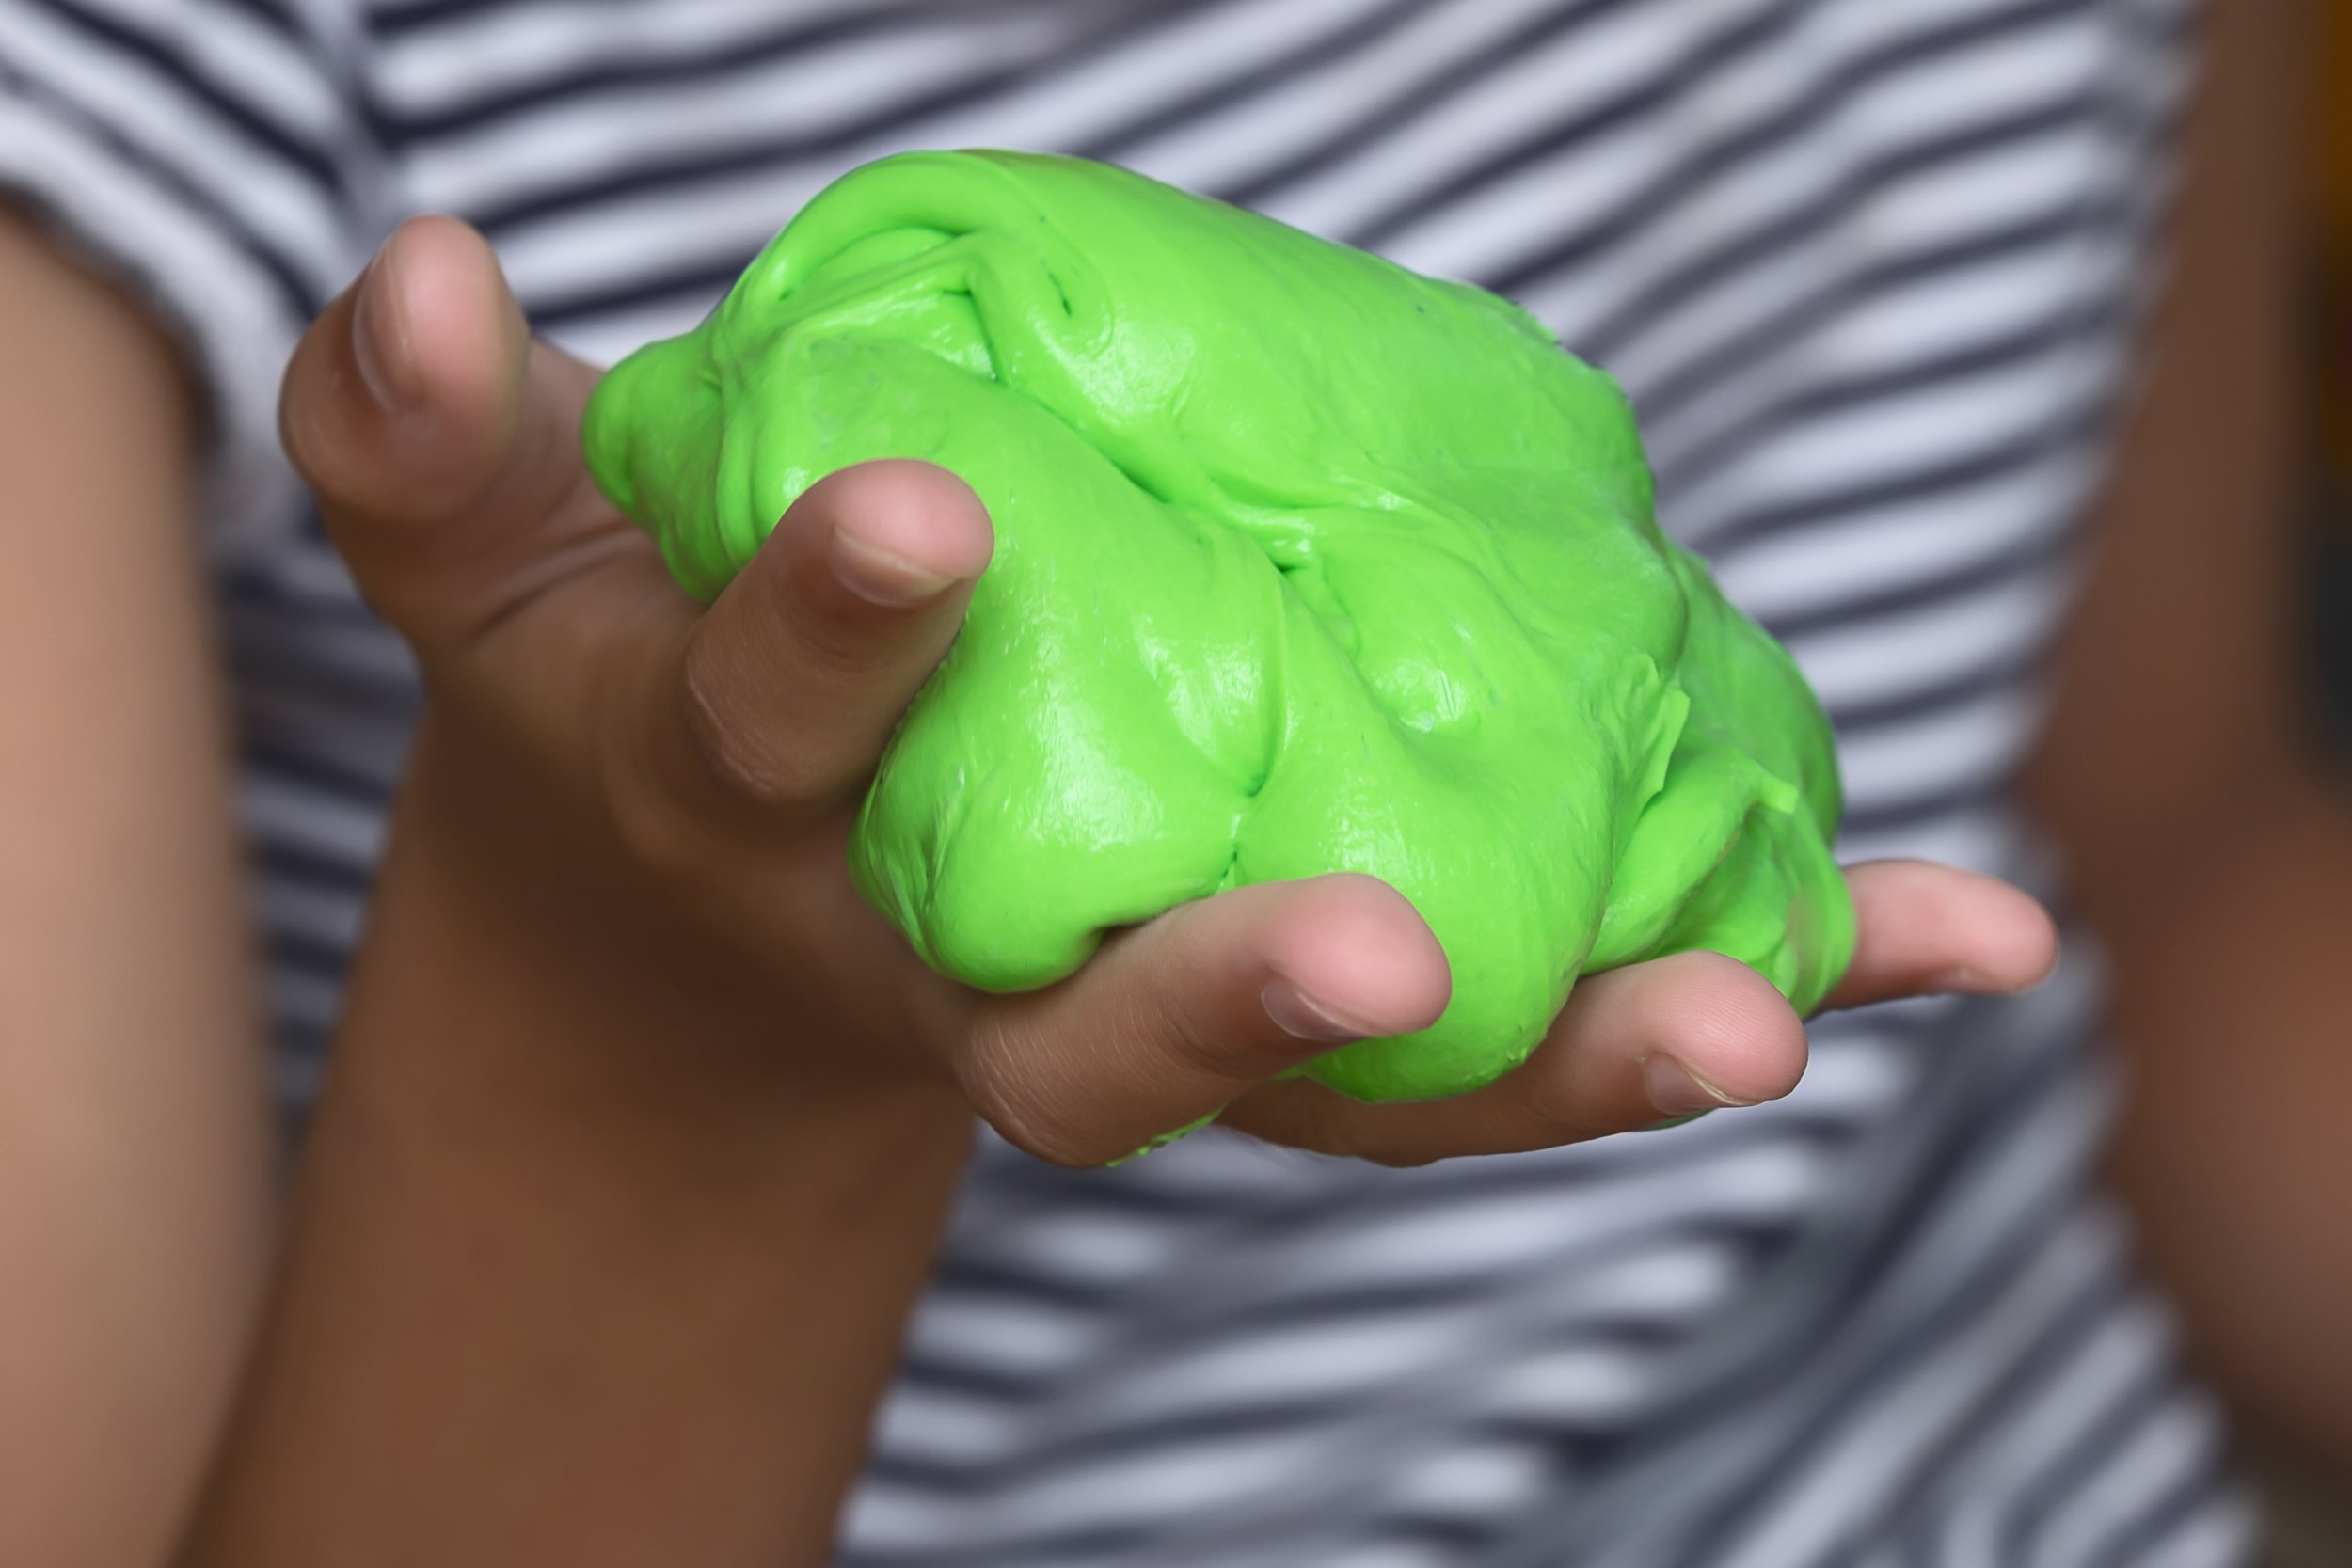 slime-toy-green-stock